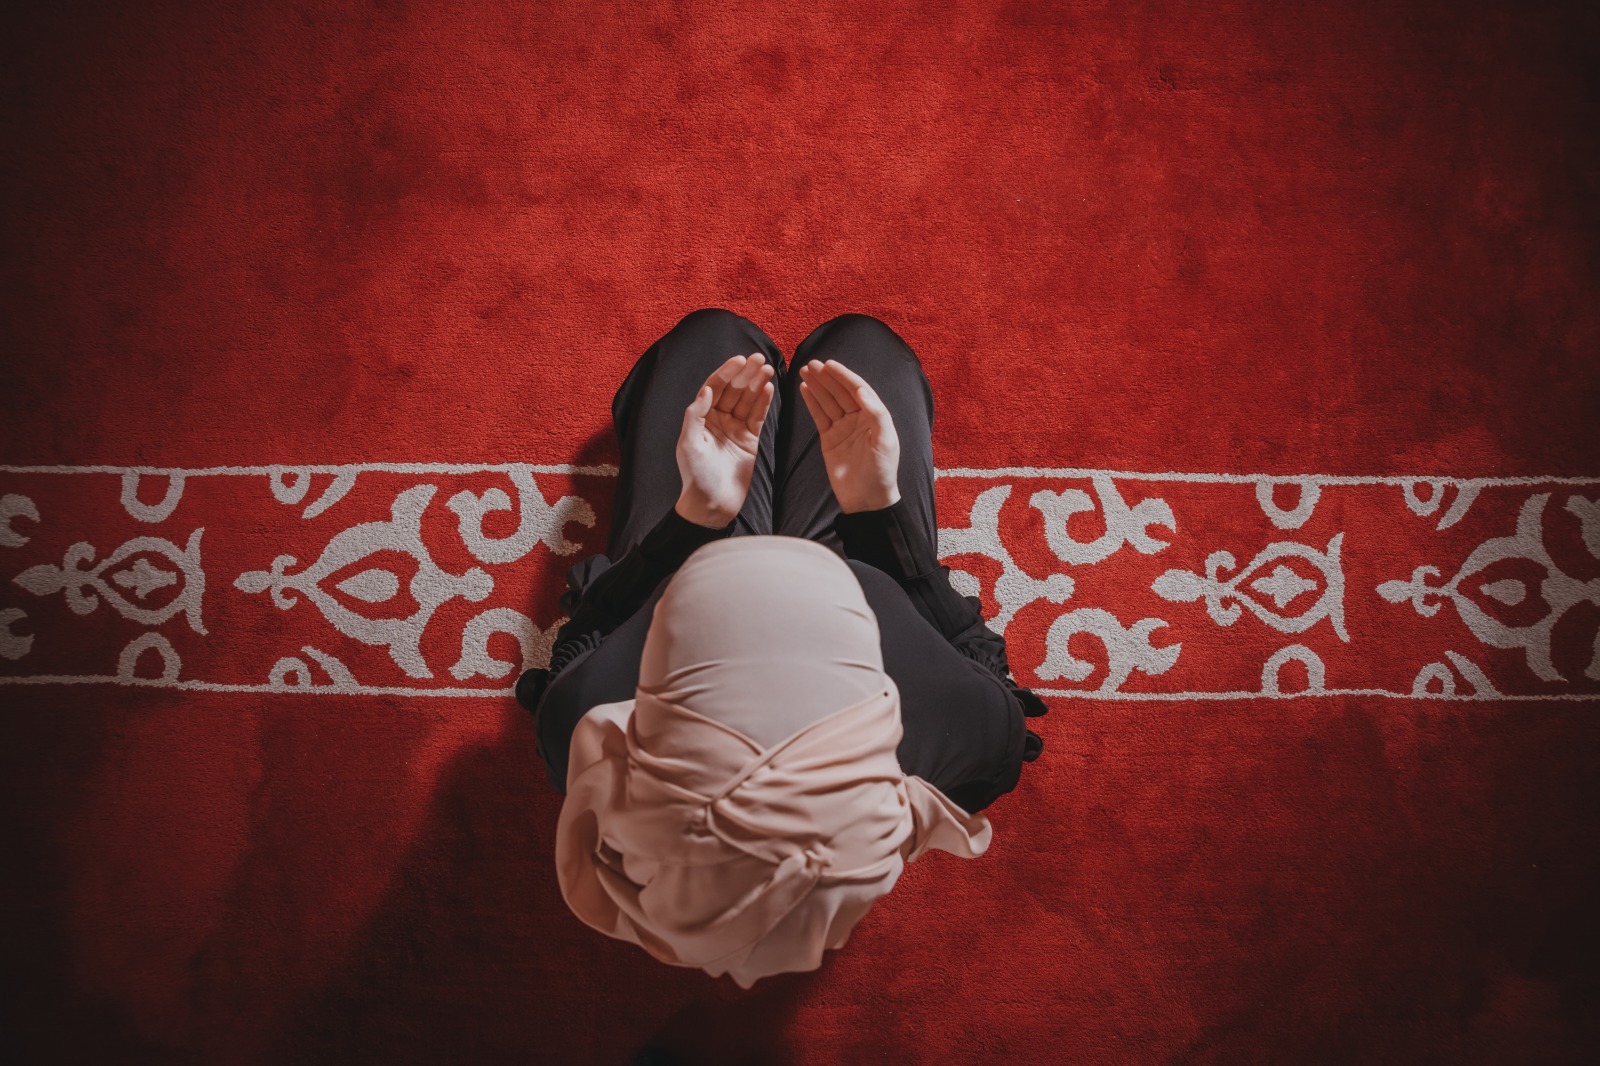 Can a Menstruating Woman Go to a Masjid